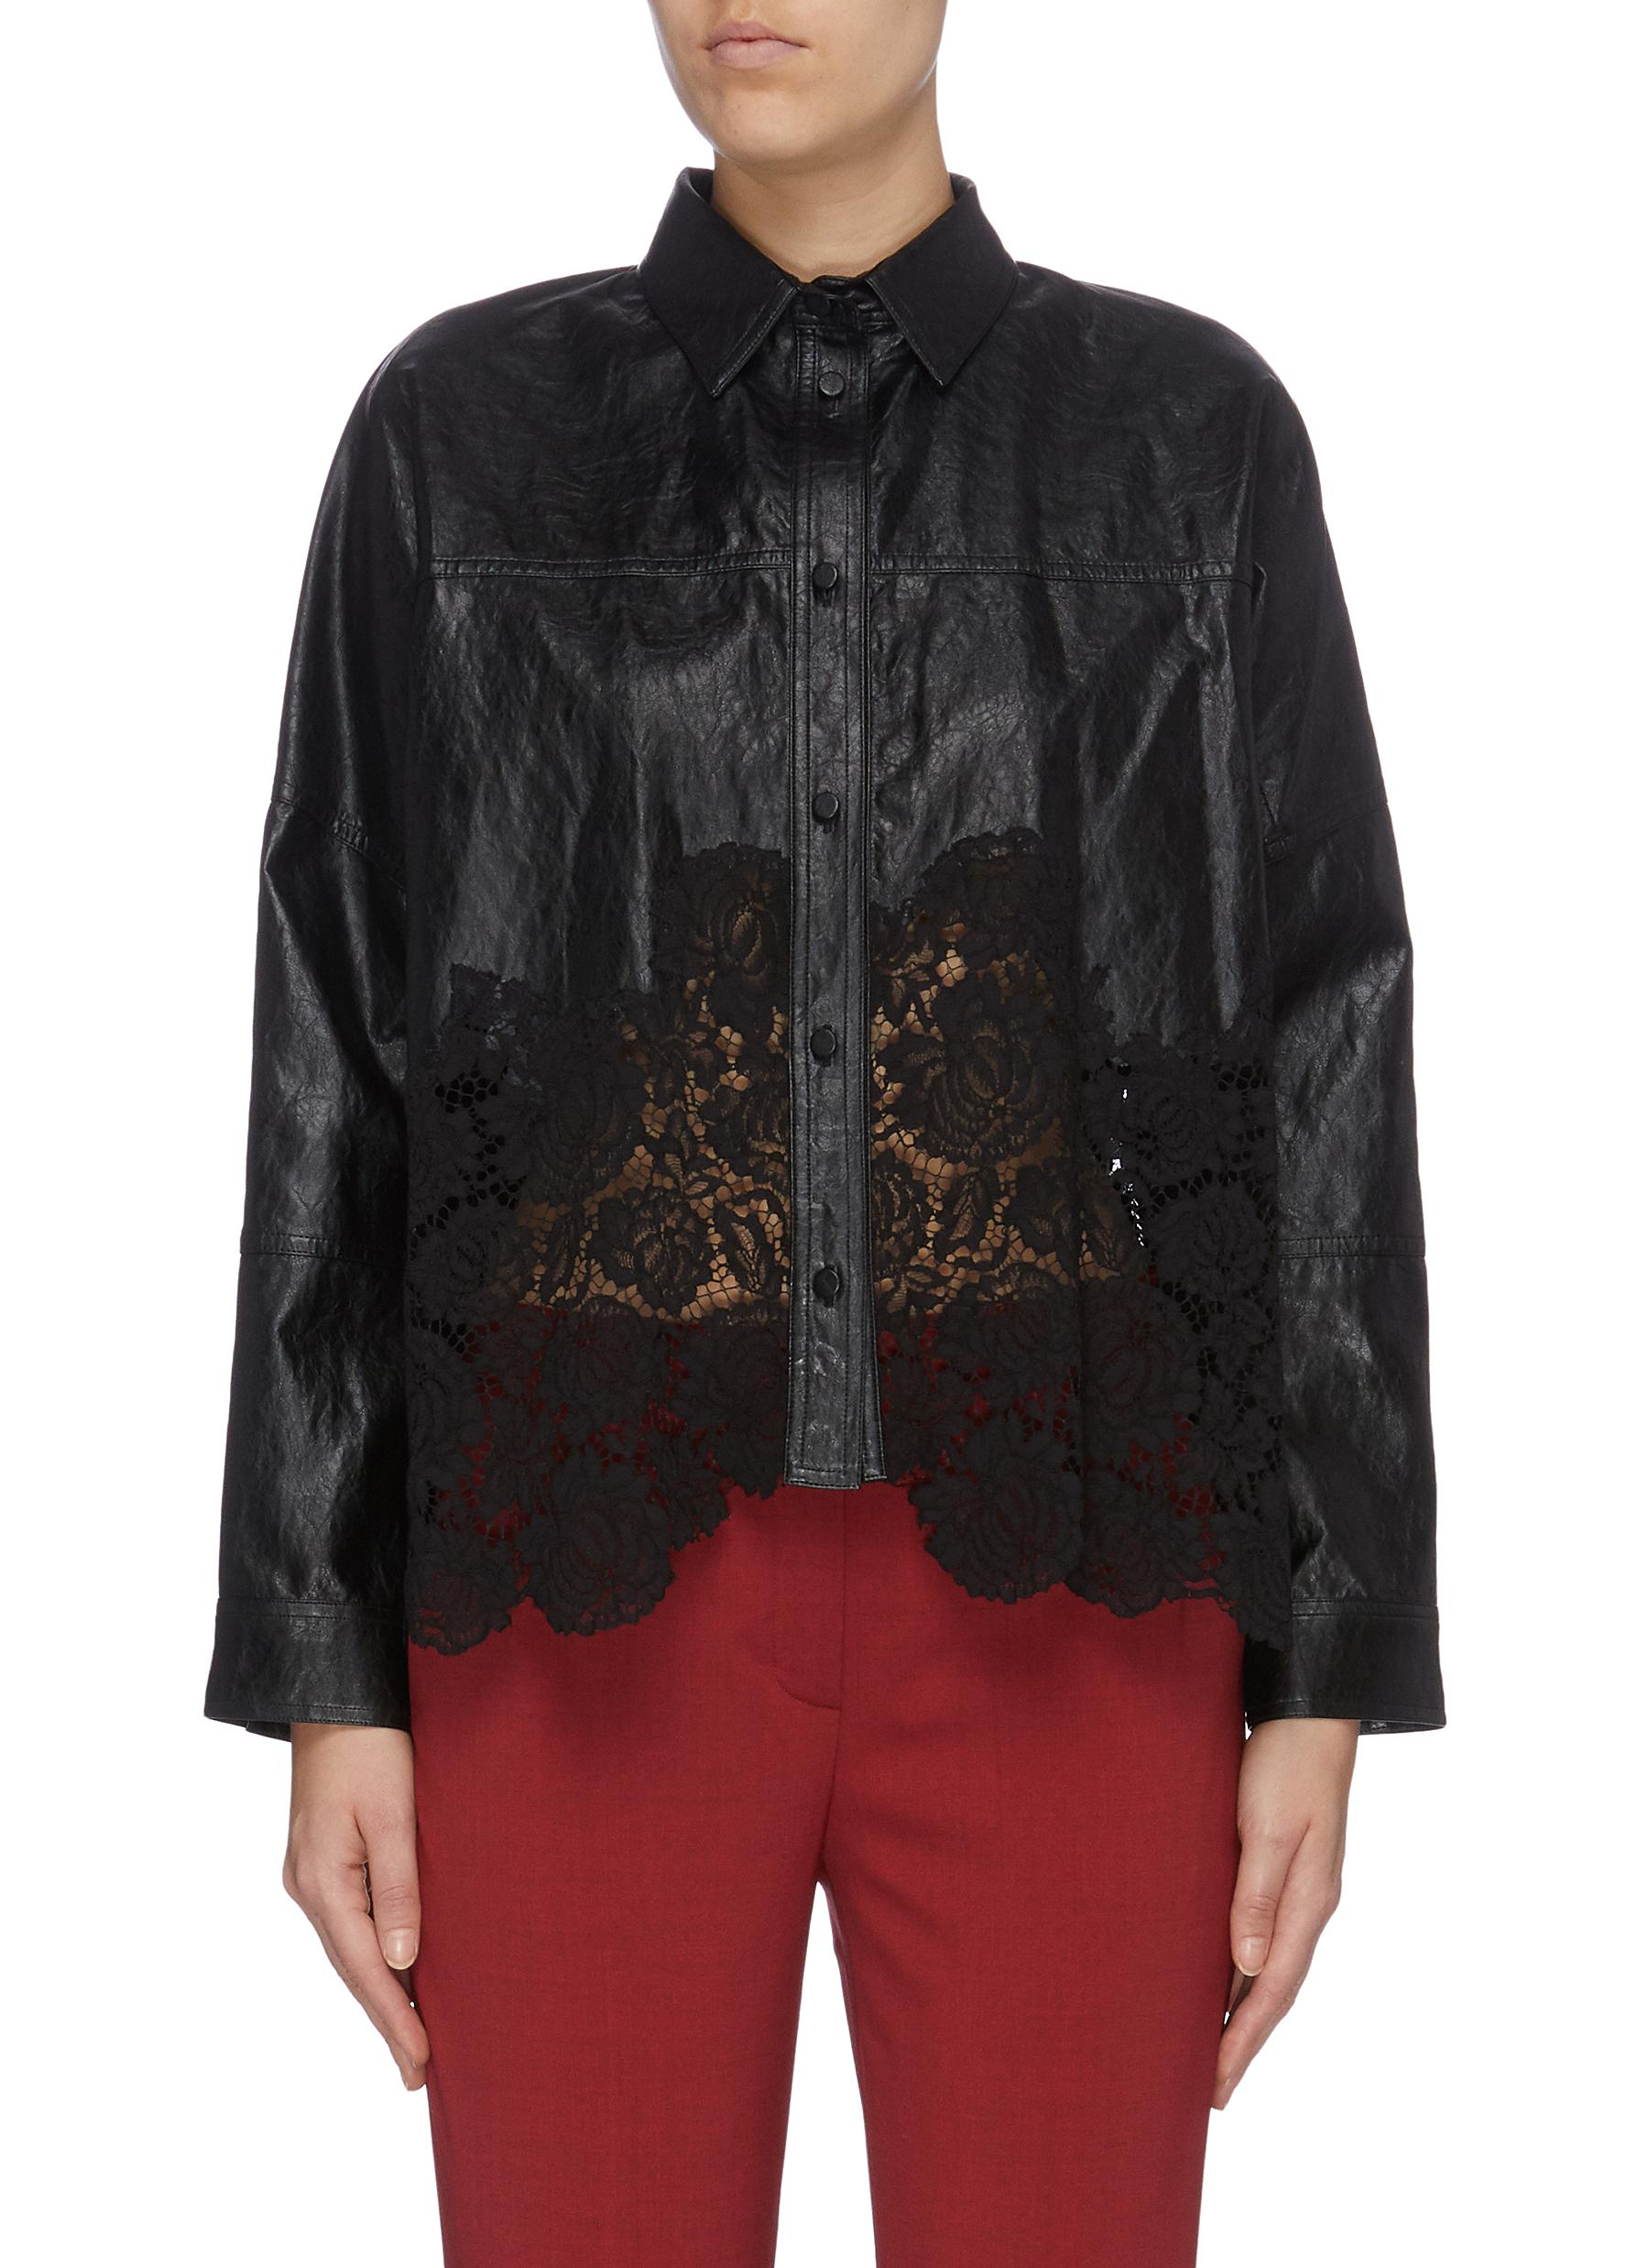 Scalloped floral lace panel faux leather shirt by Philosophy Di Lorenzo Serafini